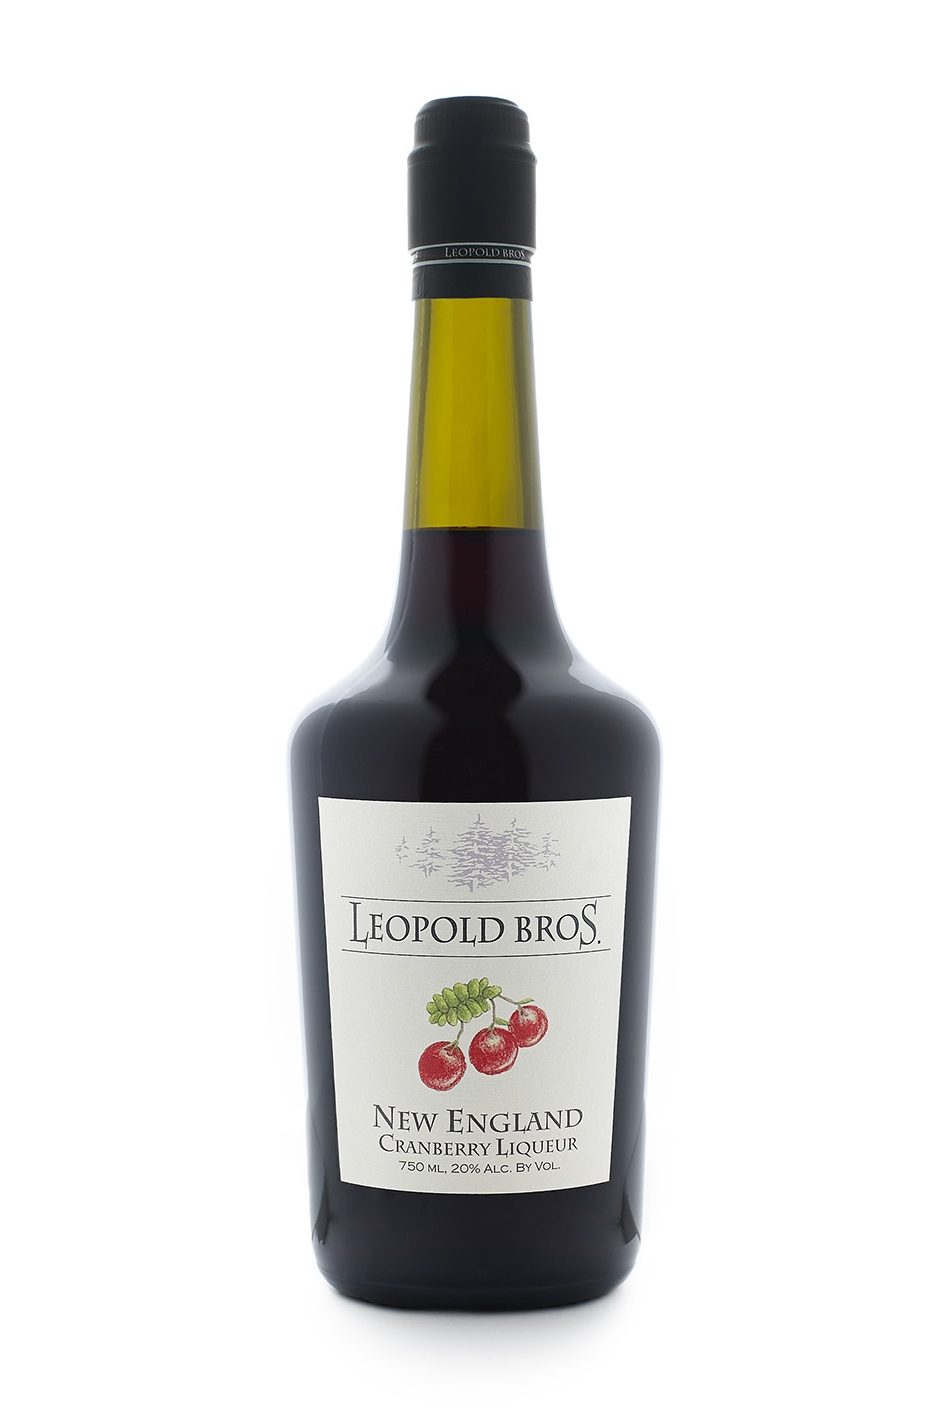 New England Cranberry Liqueur